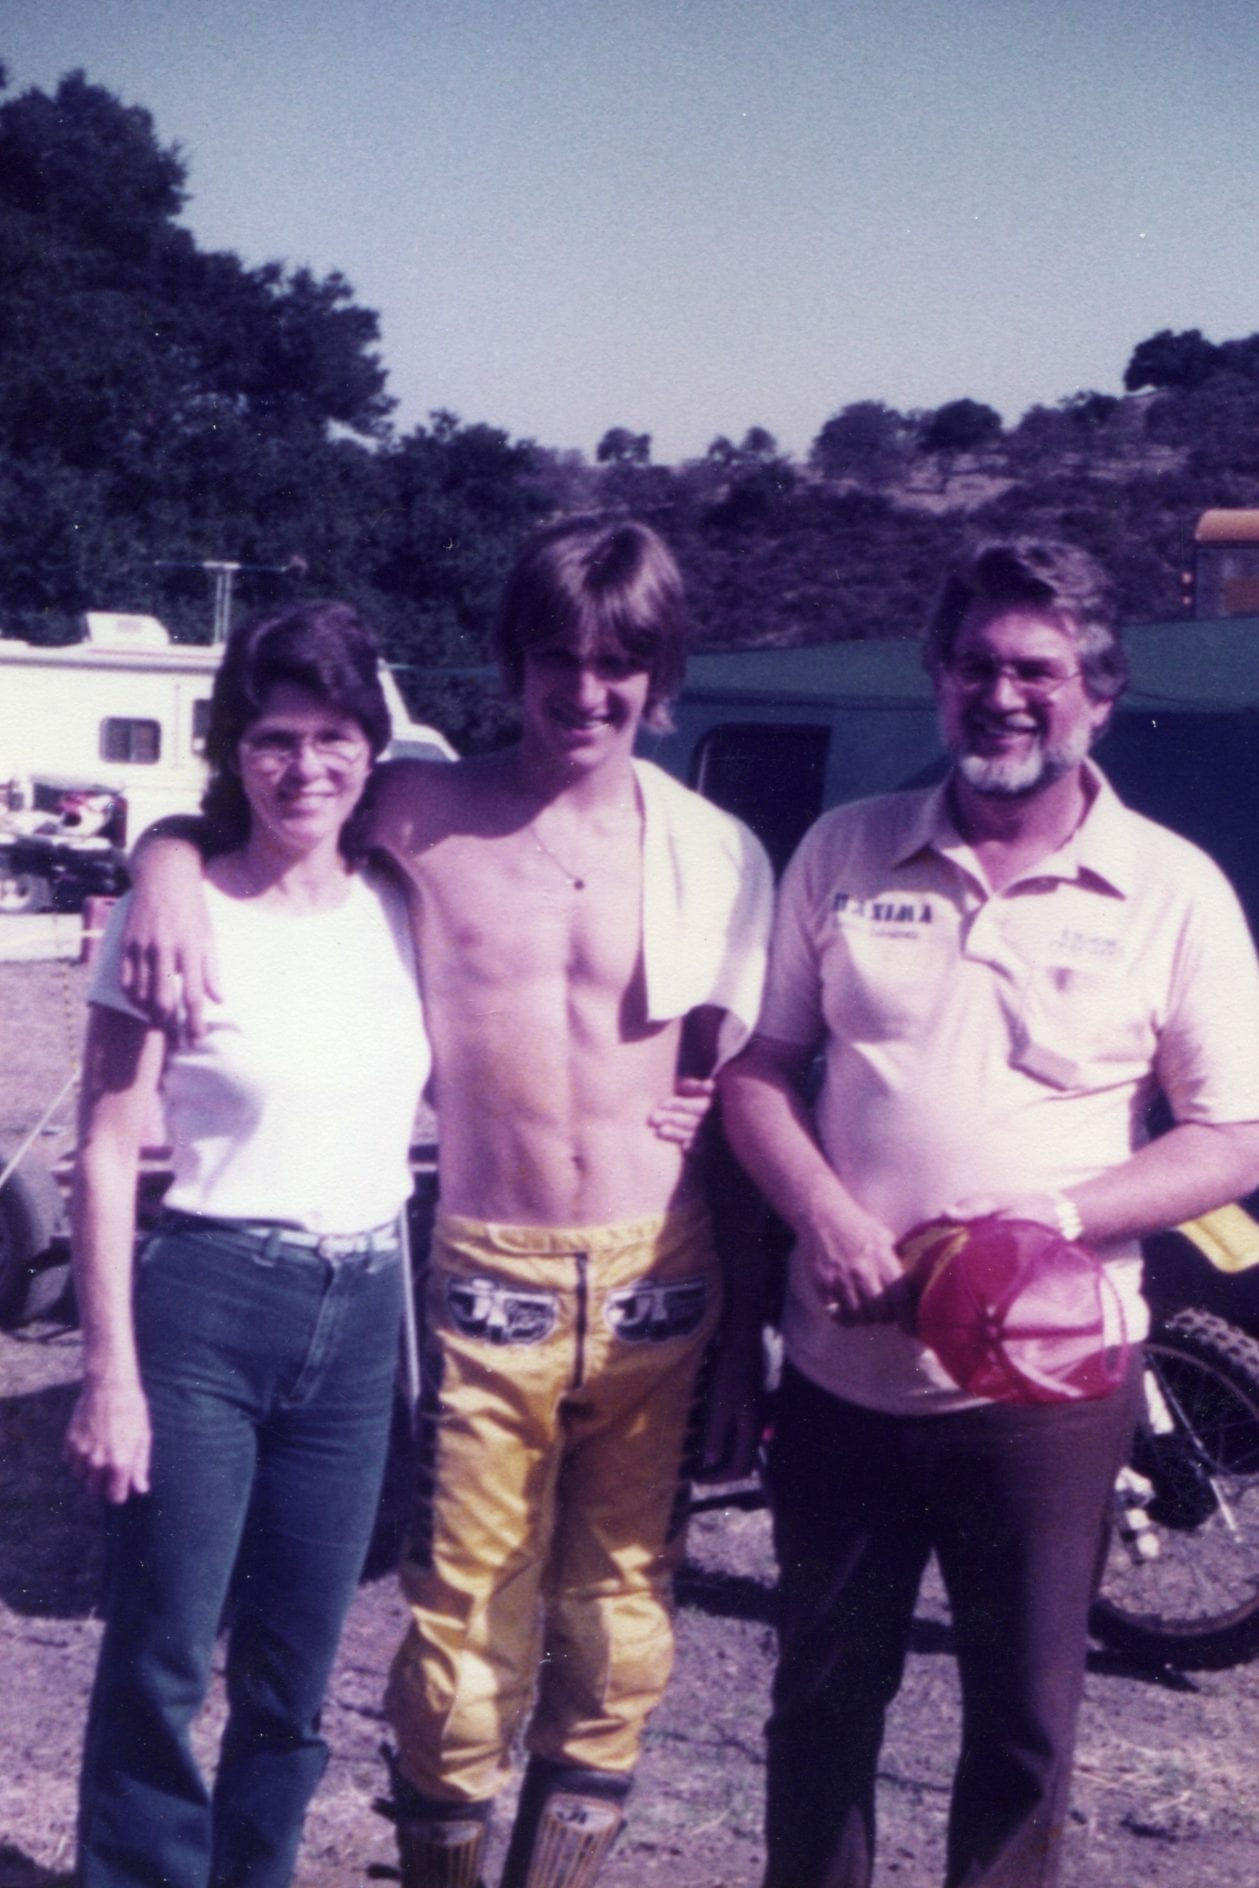 Pat, Ron and Dick Lechien in 1981 - Lechien family photo